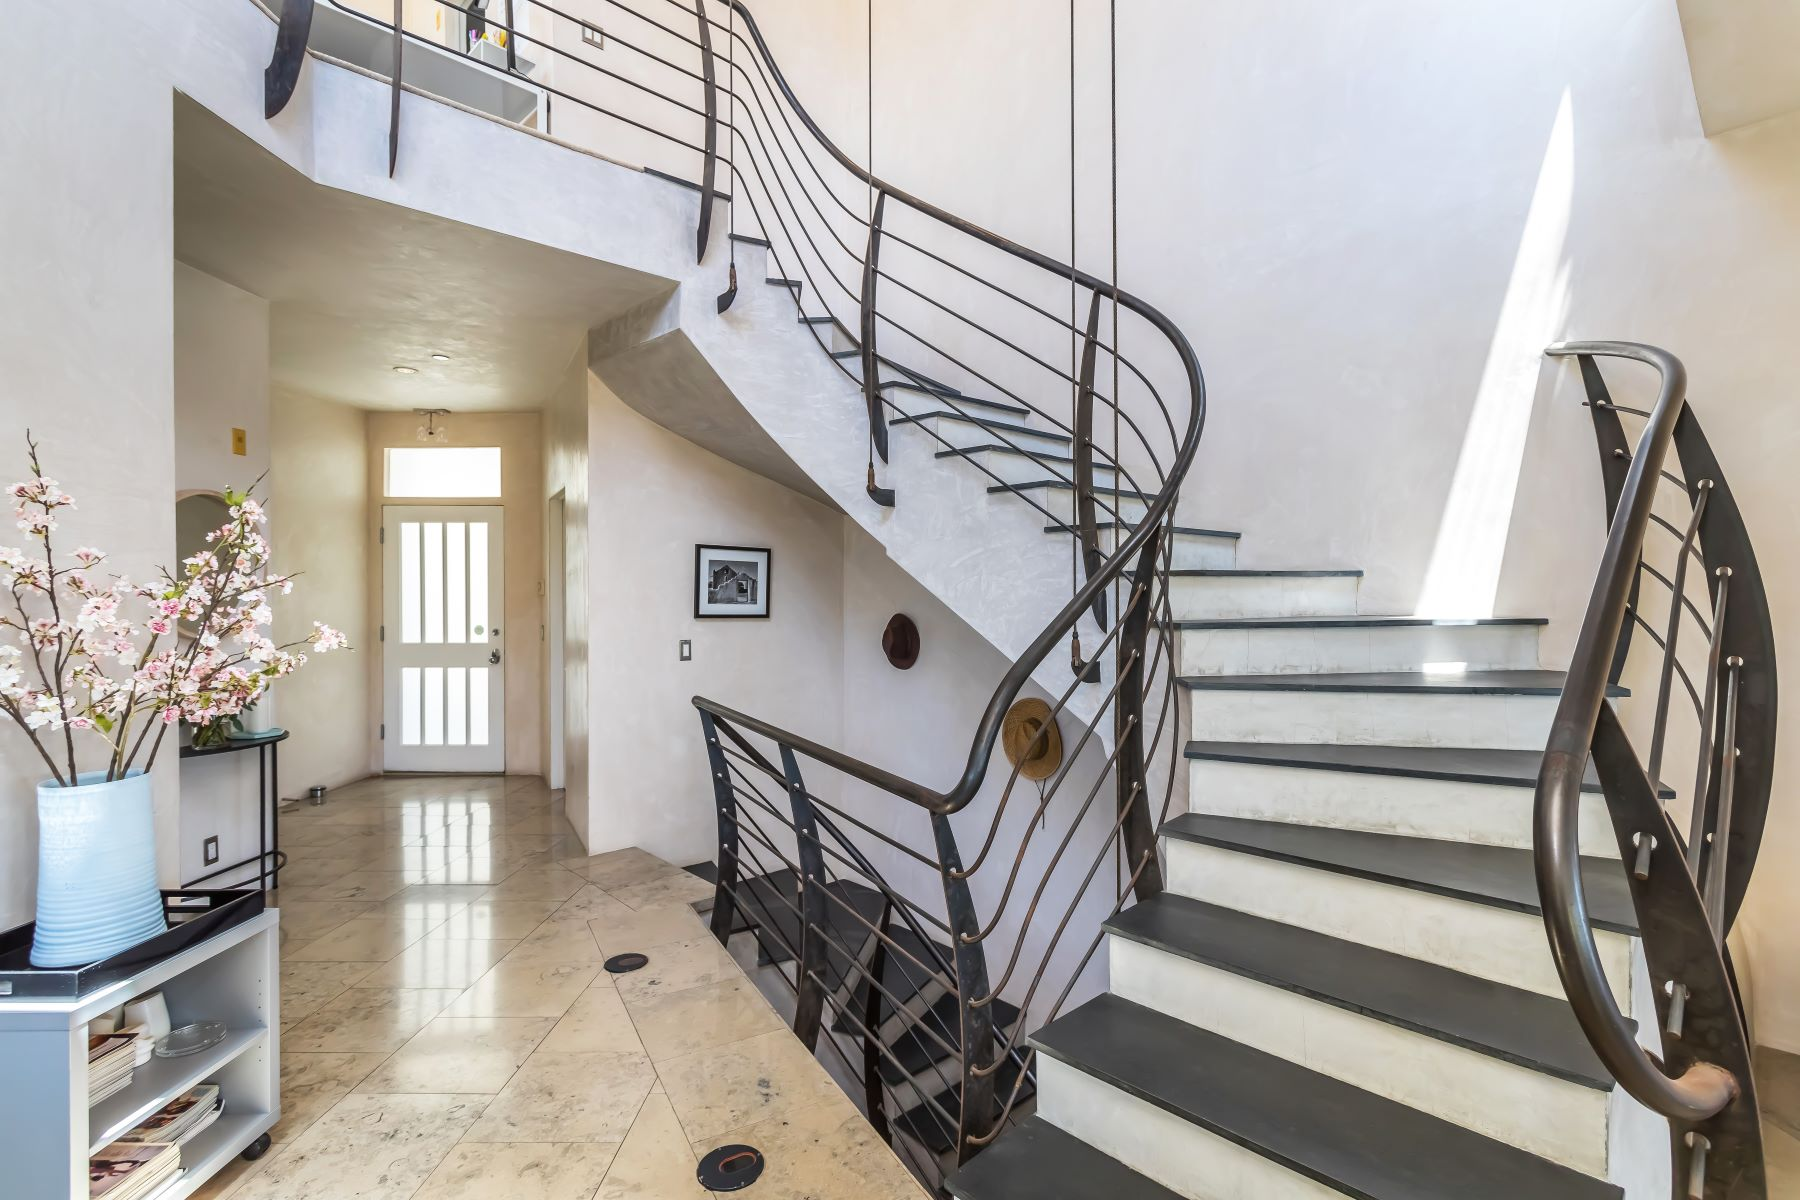 townhouses for Active at One of a Kind Santa Monica Townhouse 2115 3rd Street, Unit #203 Santa Monica, California 90405 United States